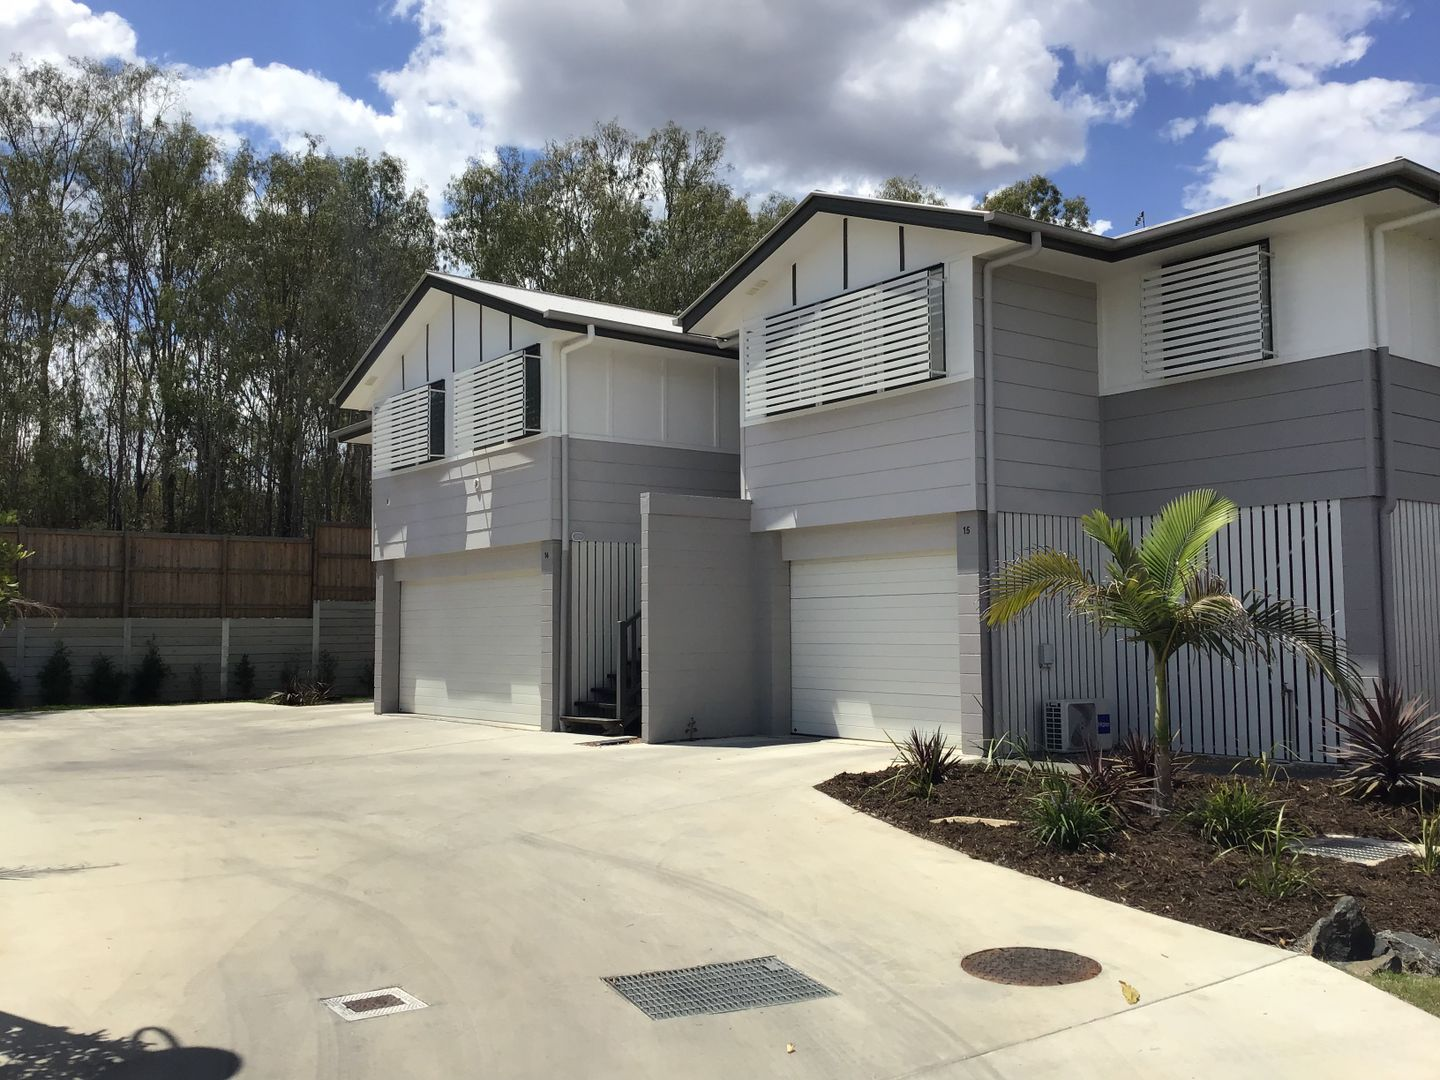 22/1 Able Street, Sadliers Crossing QLD 4305, Image 0